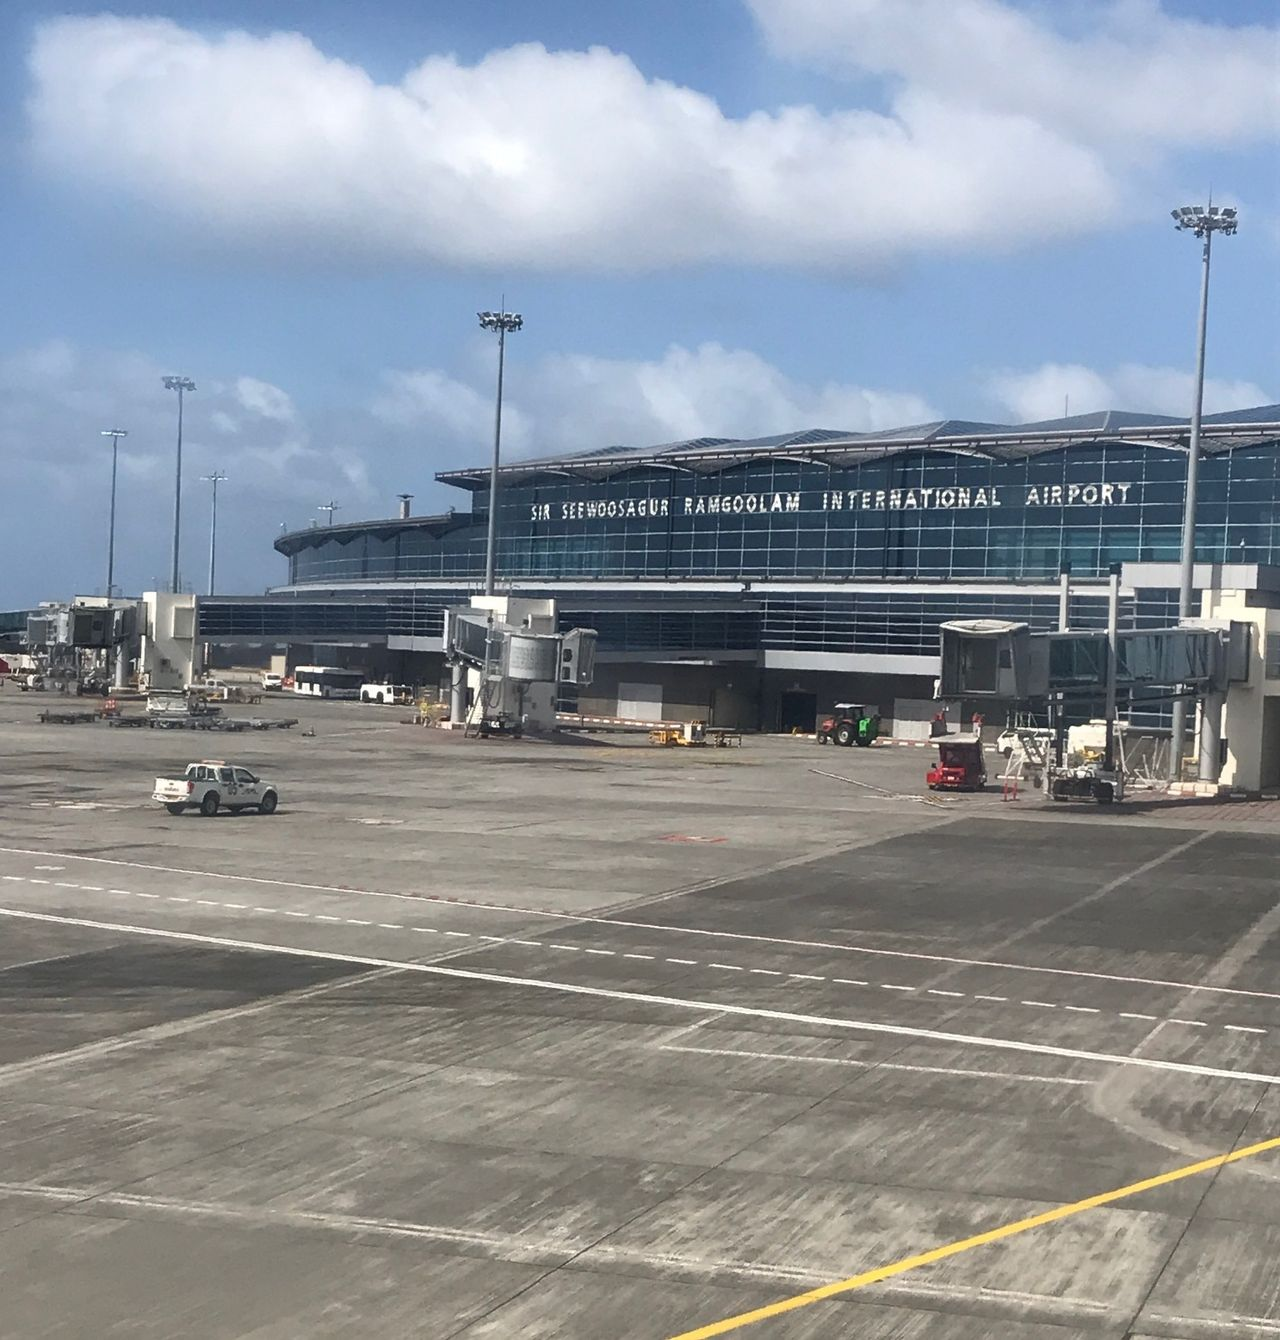 Review of air mauritius flight from port louis to johannesburg in economy - Flights to port louis mauritius ...